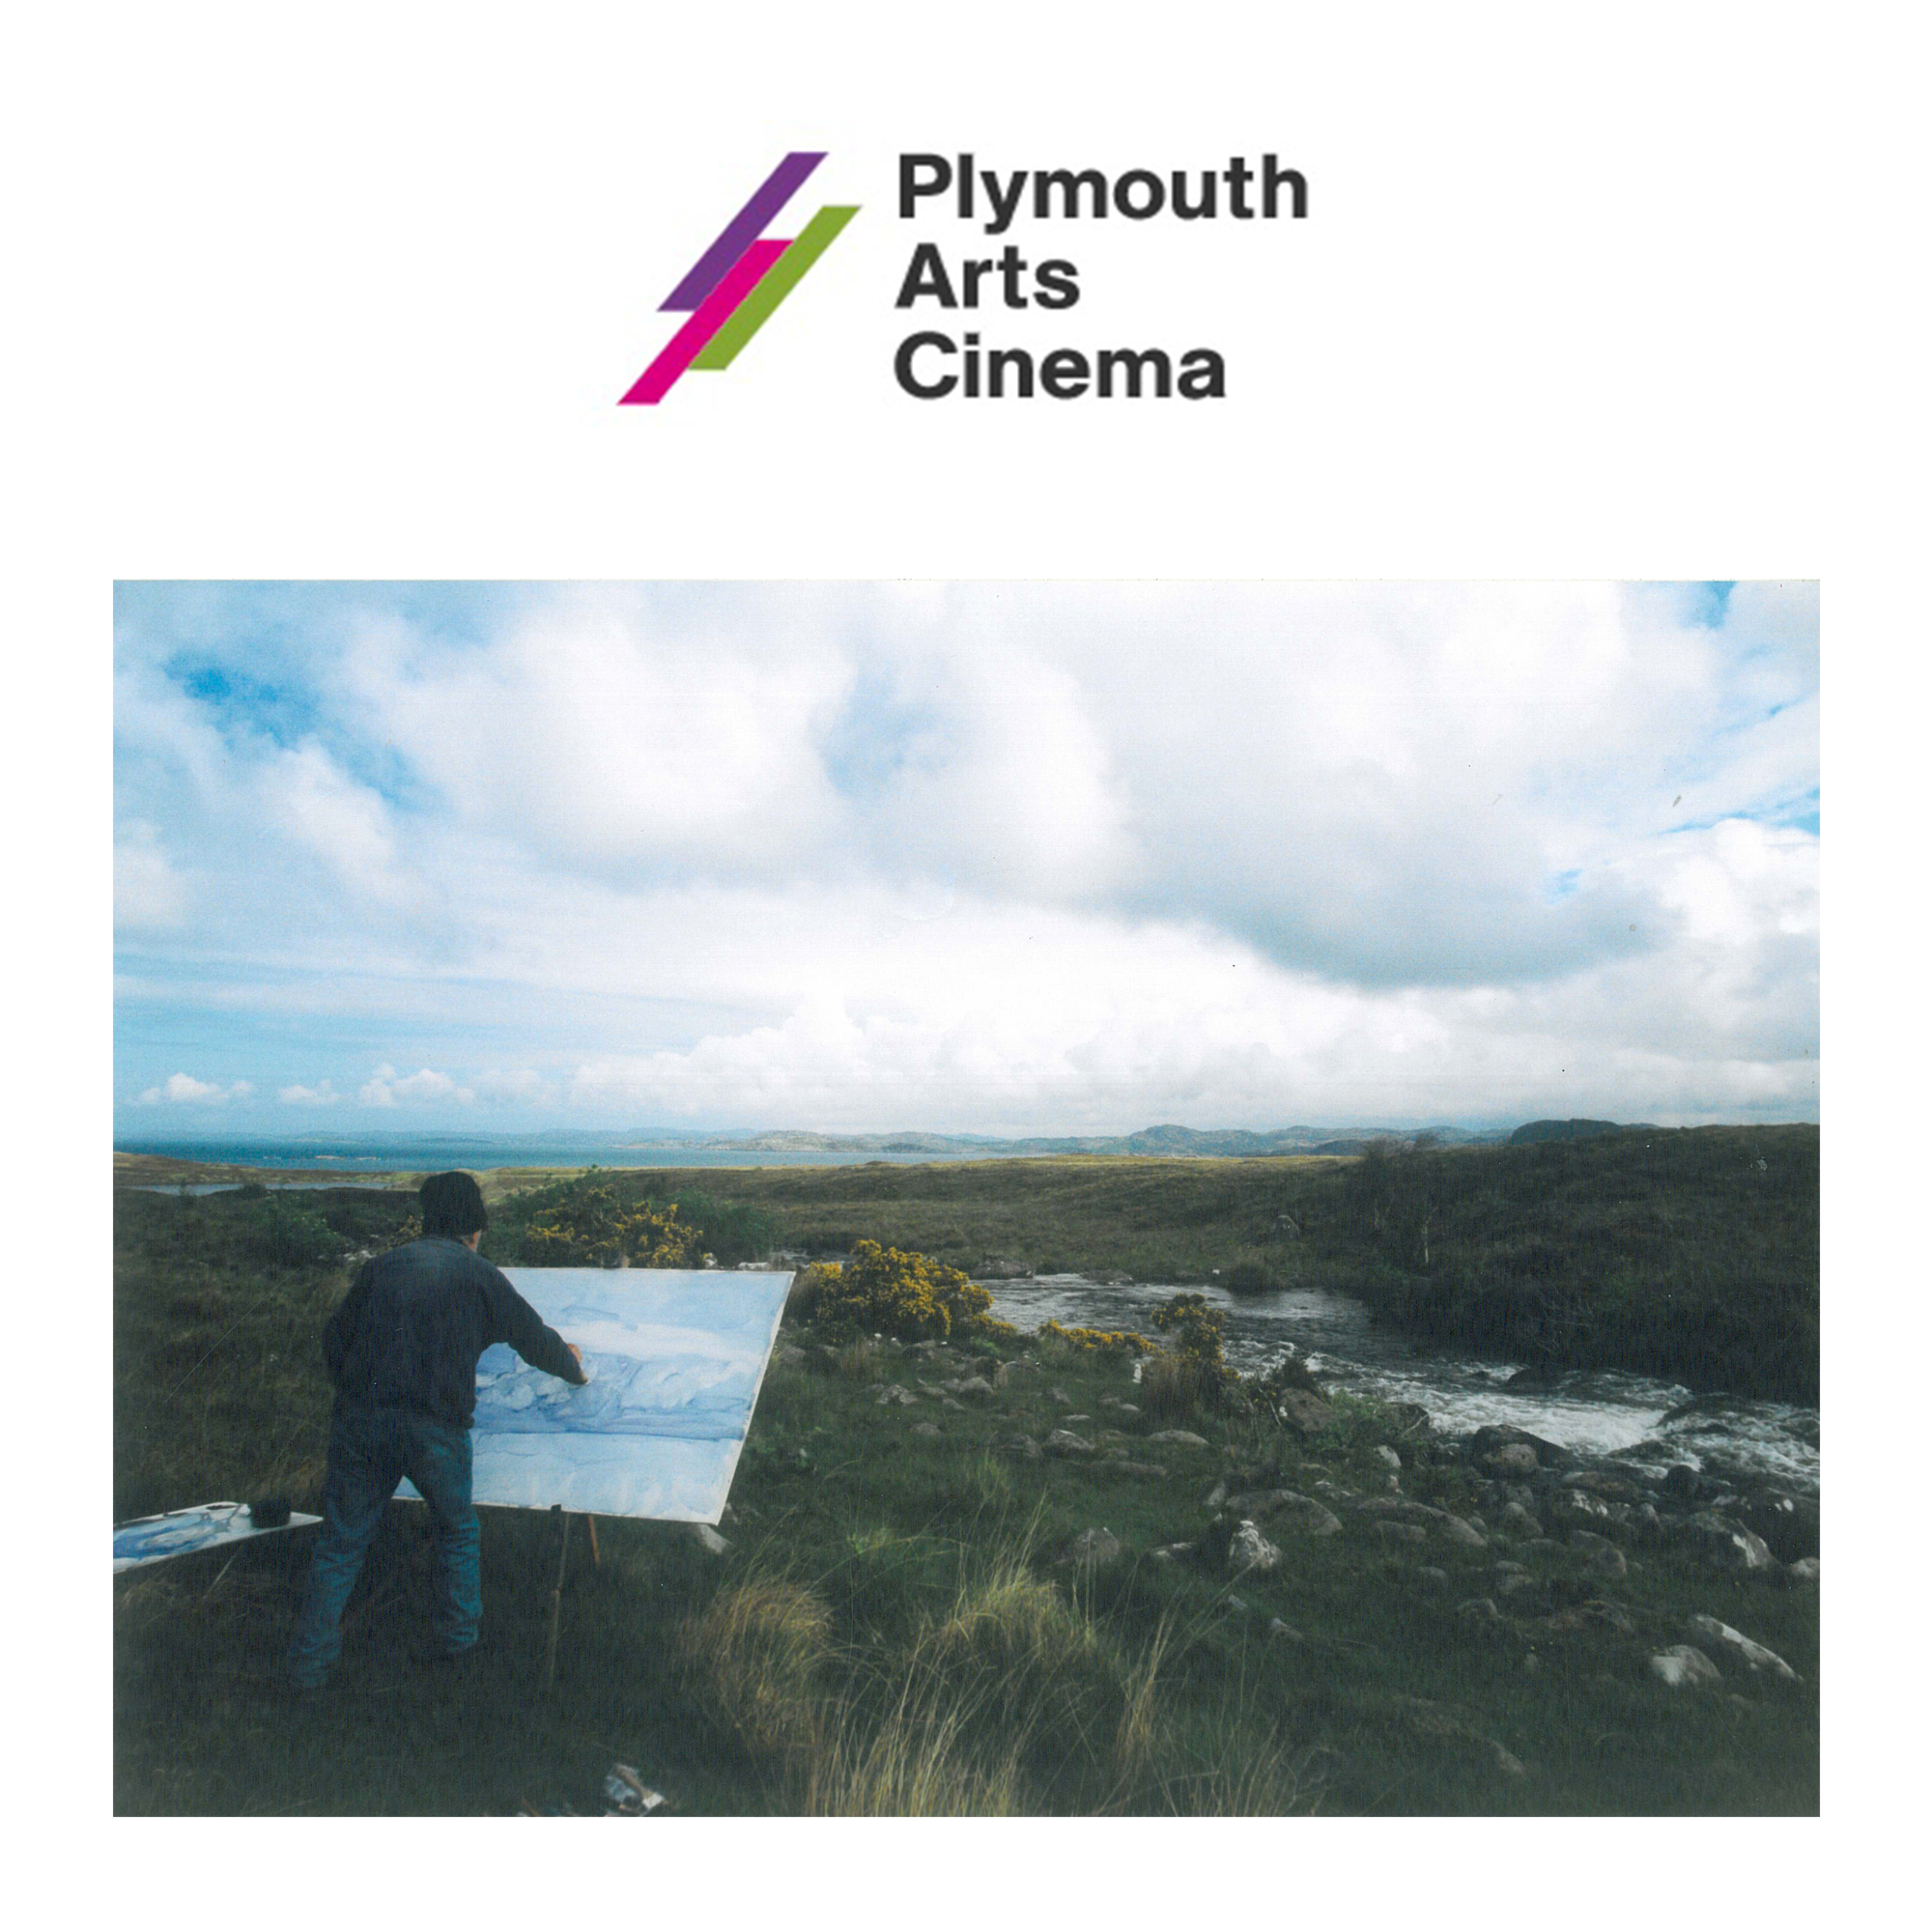 Eye Of The Storm at Plymouth Arts Cinema